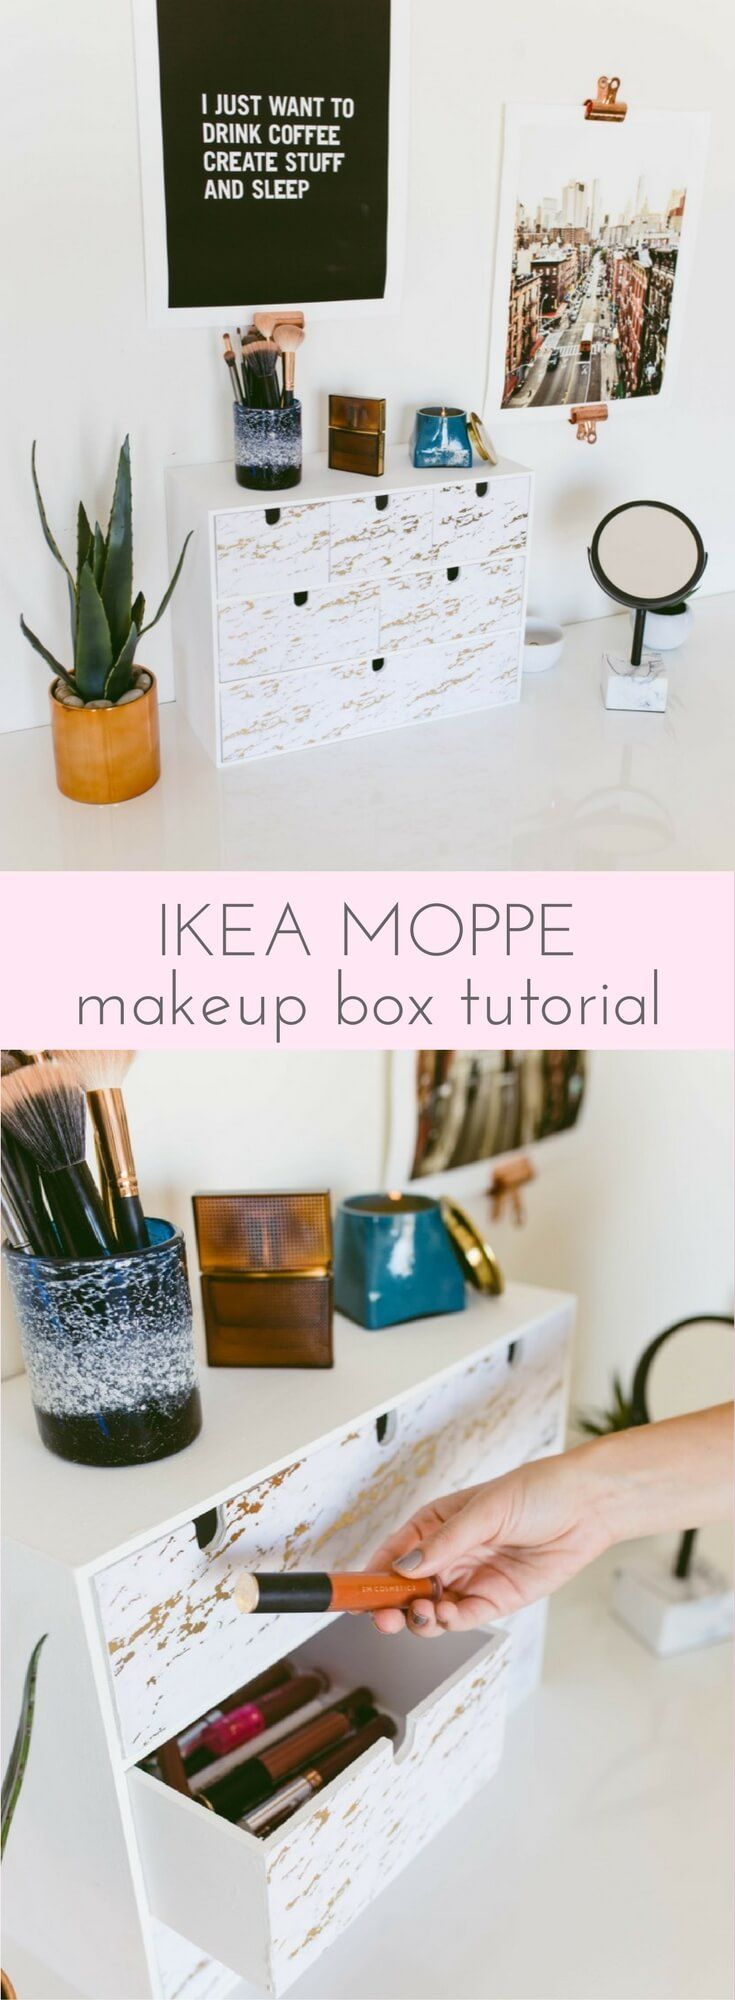 The IKEA MOPPE is back! And a Makeup Box tutorial